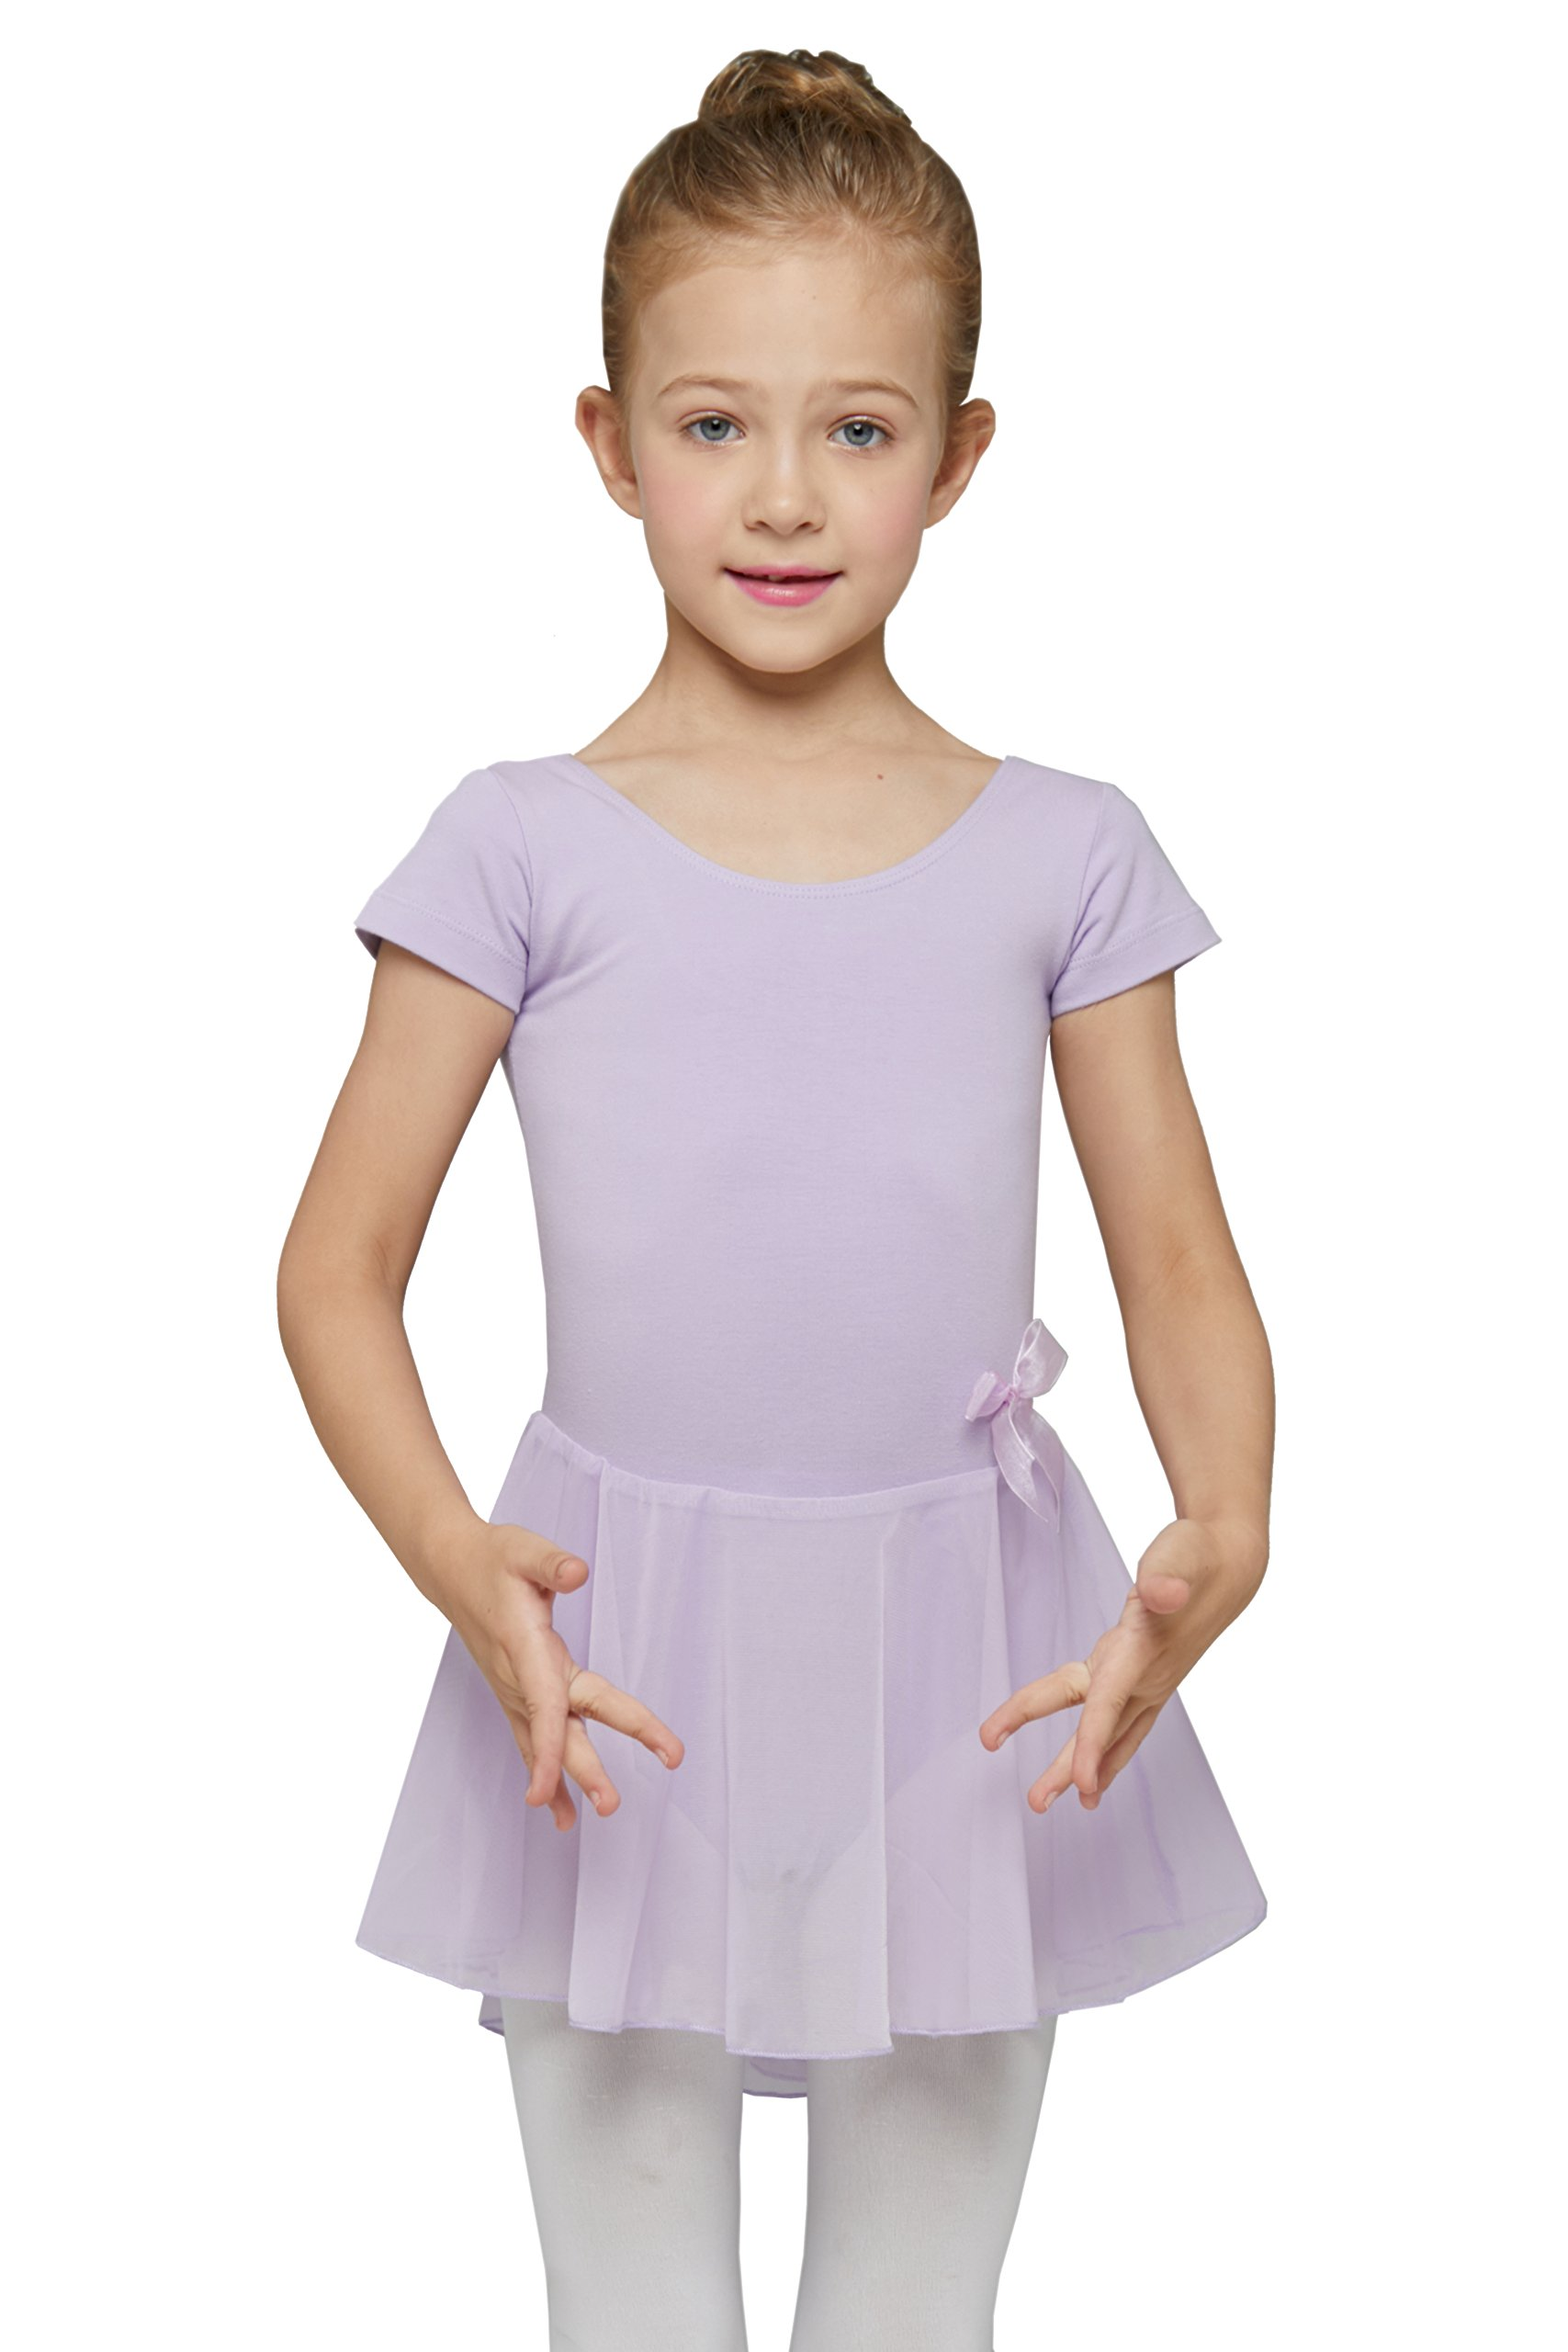 Dance Leotard with Skirt for Girls by Mdnmd (Tag14) Age 8-10, Lilac (Purple)